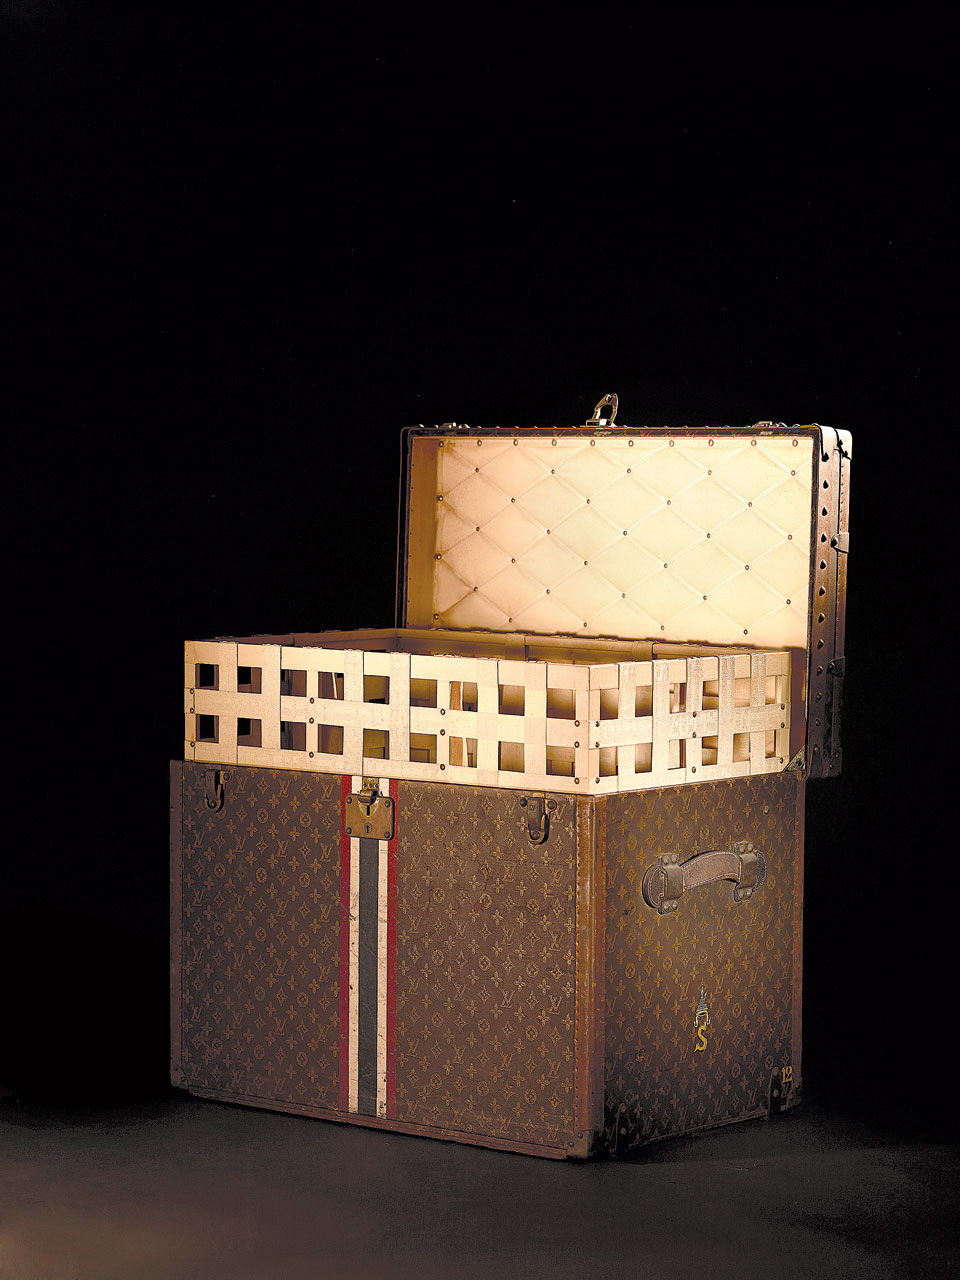 VUITTON HAT TRUNK. The Vuitton luggage ordered for Queen Sirikit was striped with the colors of the Thai flag and monogrammed with the Queen's cipher.